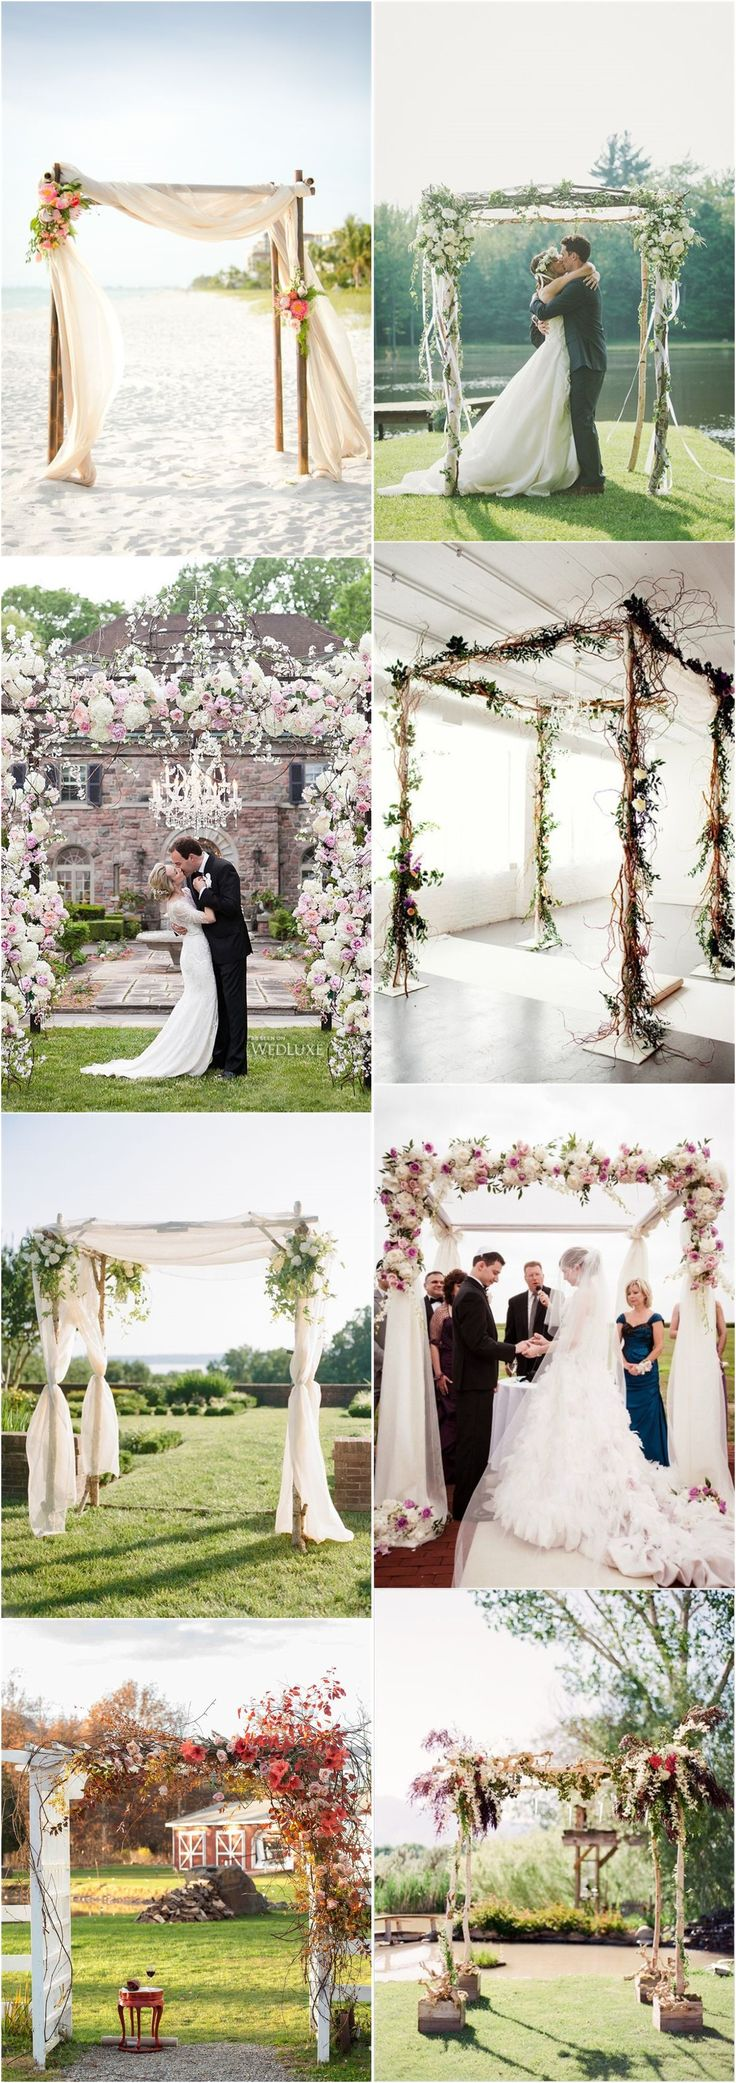 91 best outdoor weddings images on pinterest rustic weddings imaginative unique floral wedding chuppah altar decoration ideas junglespirit Gallery